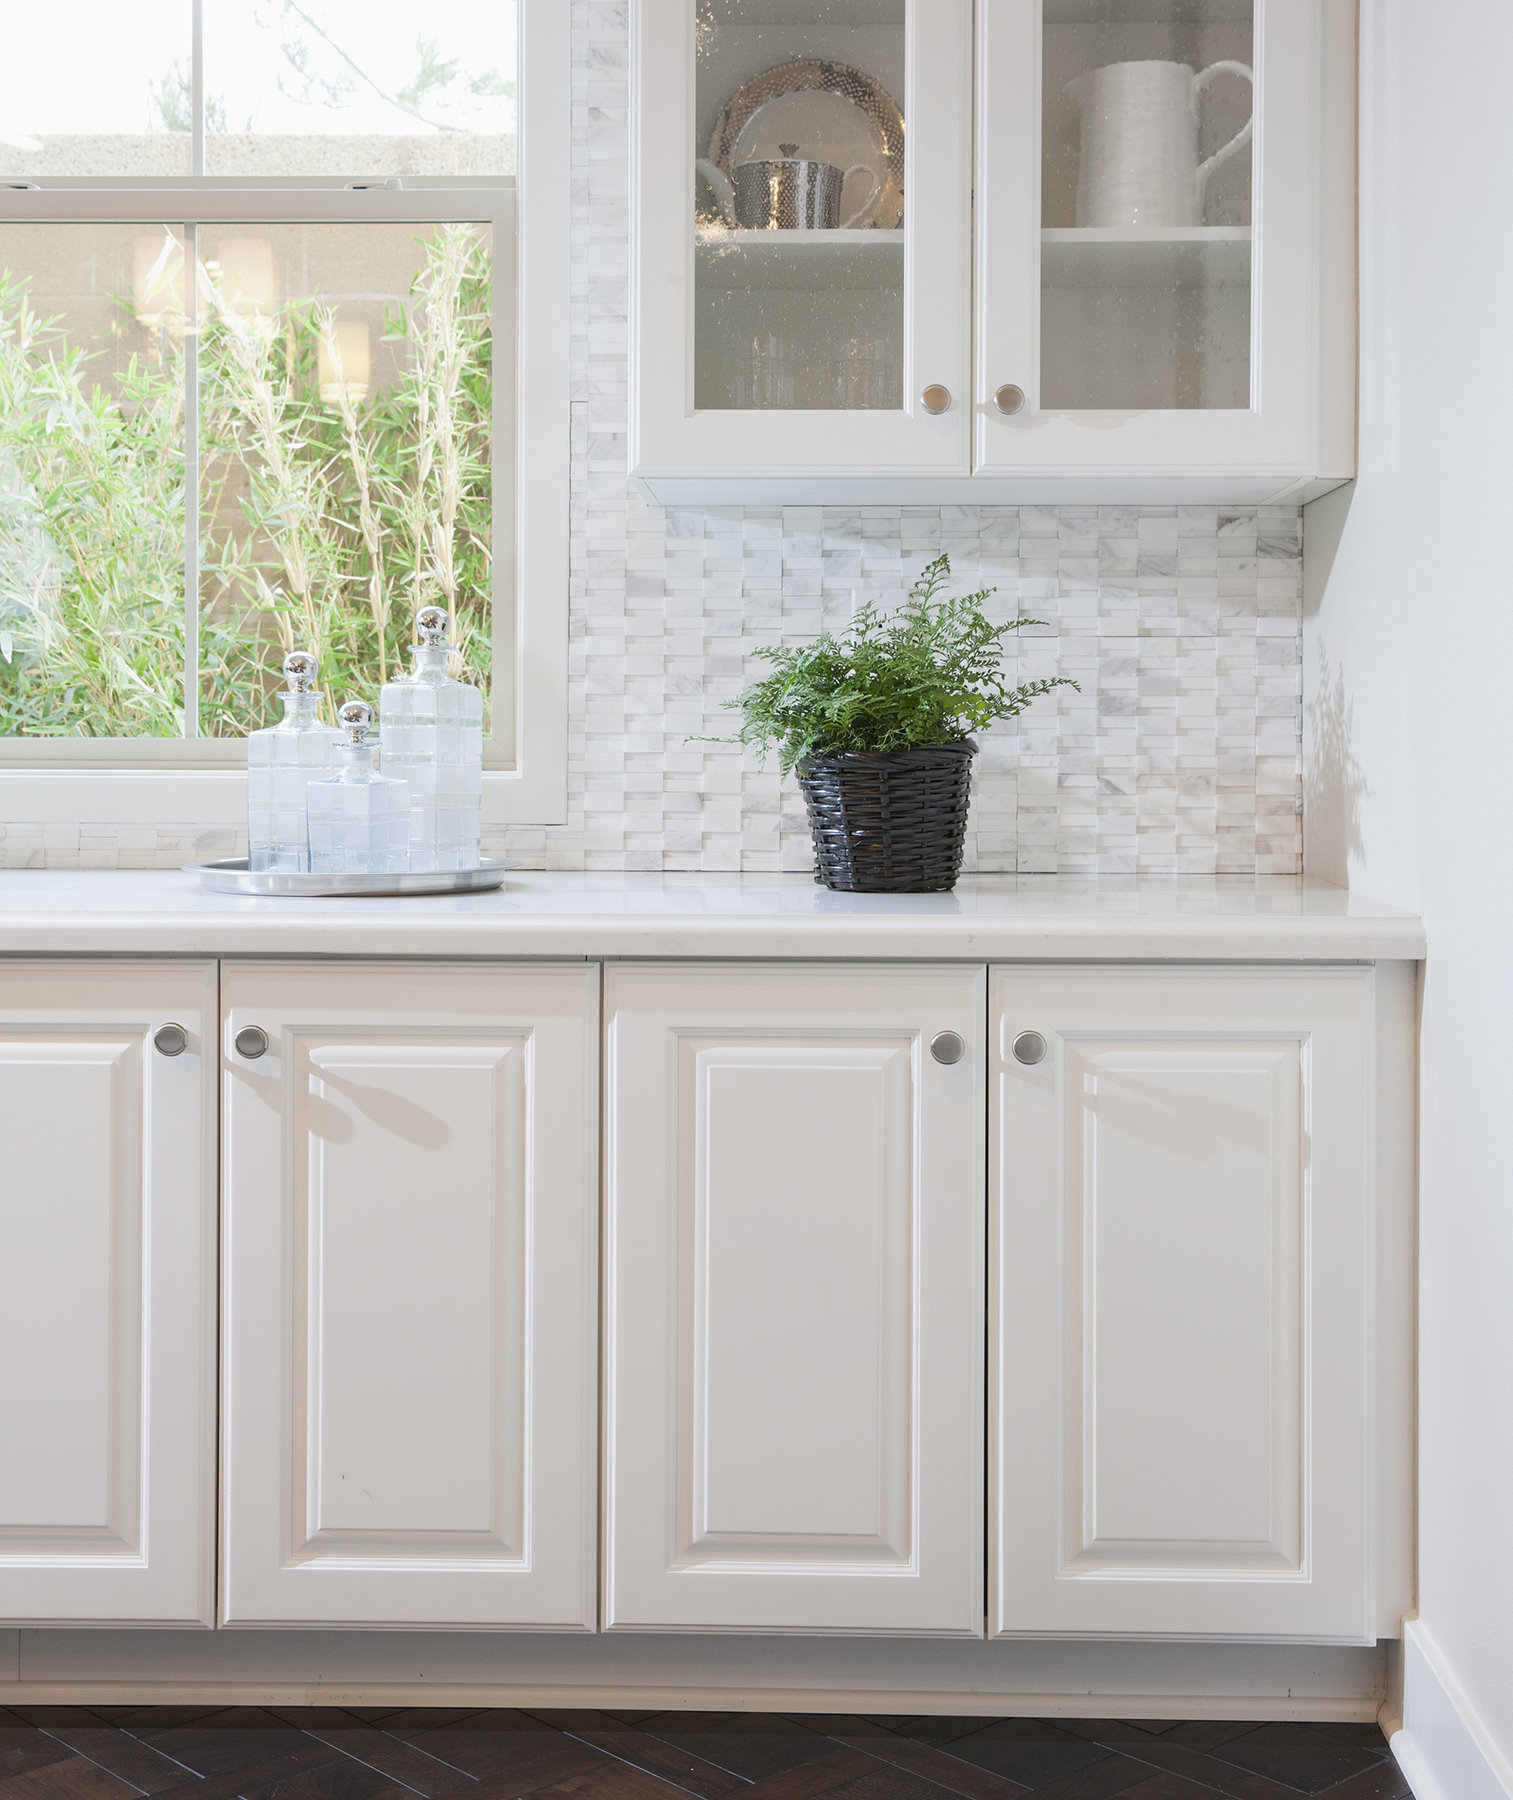 Raised Panels on Cabinet Doors  How to Clean the Grossest